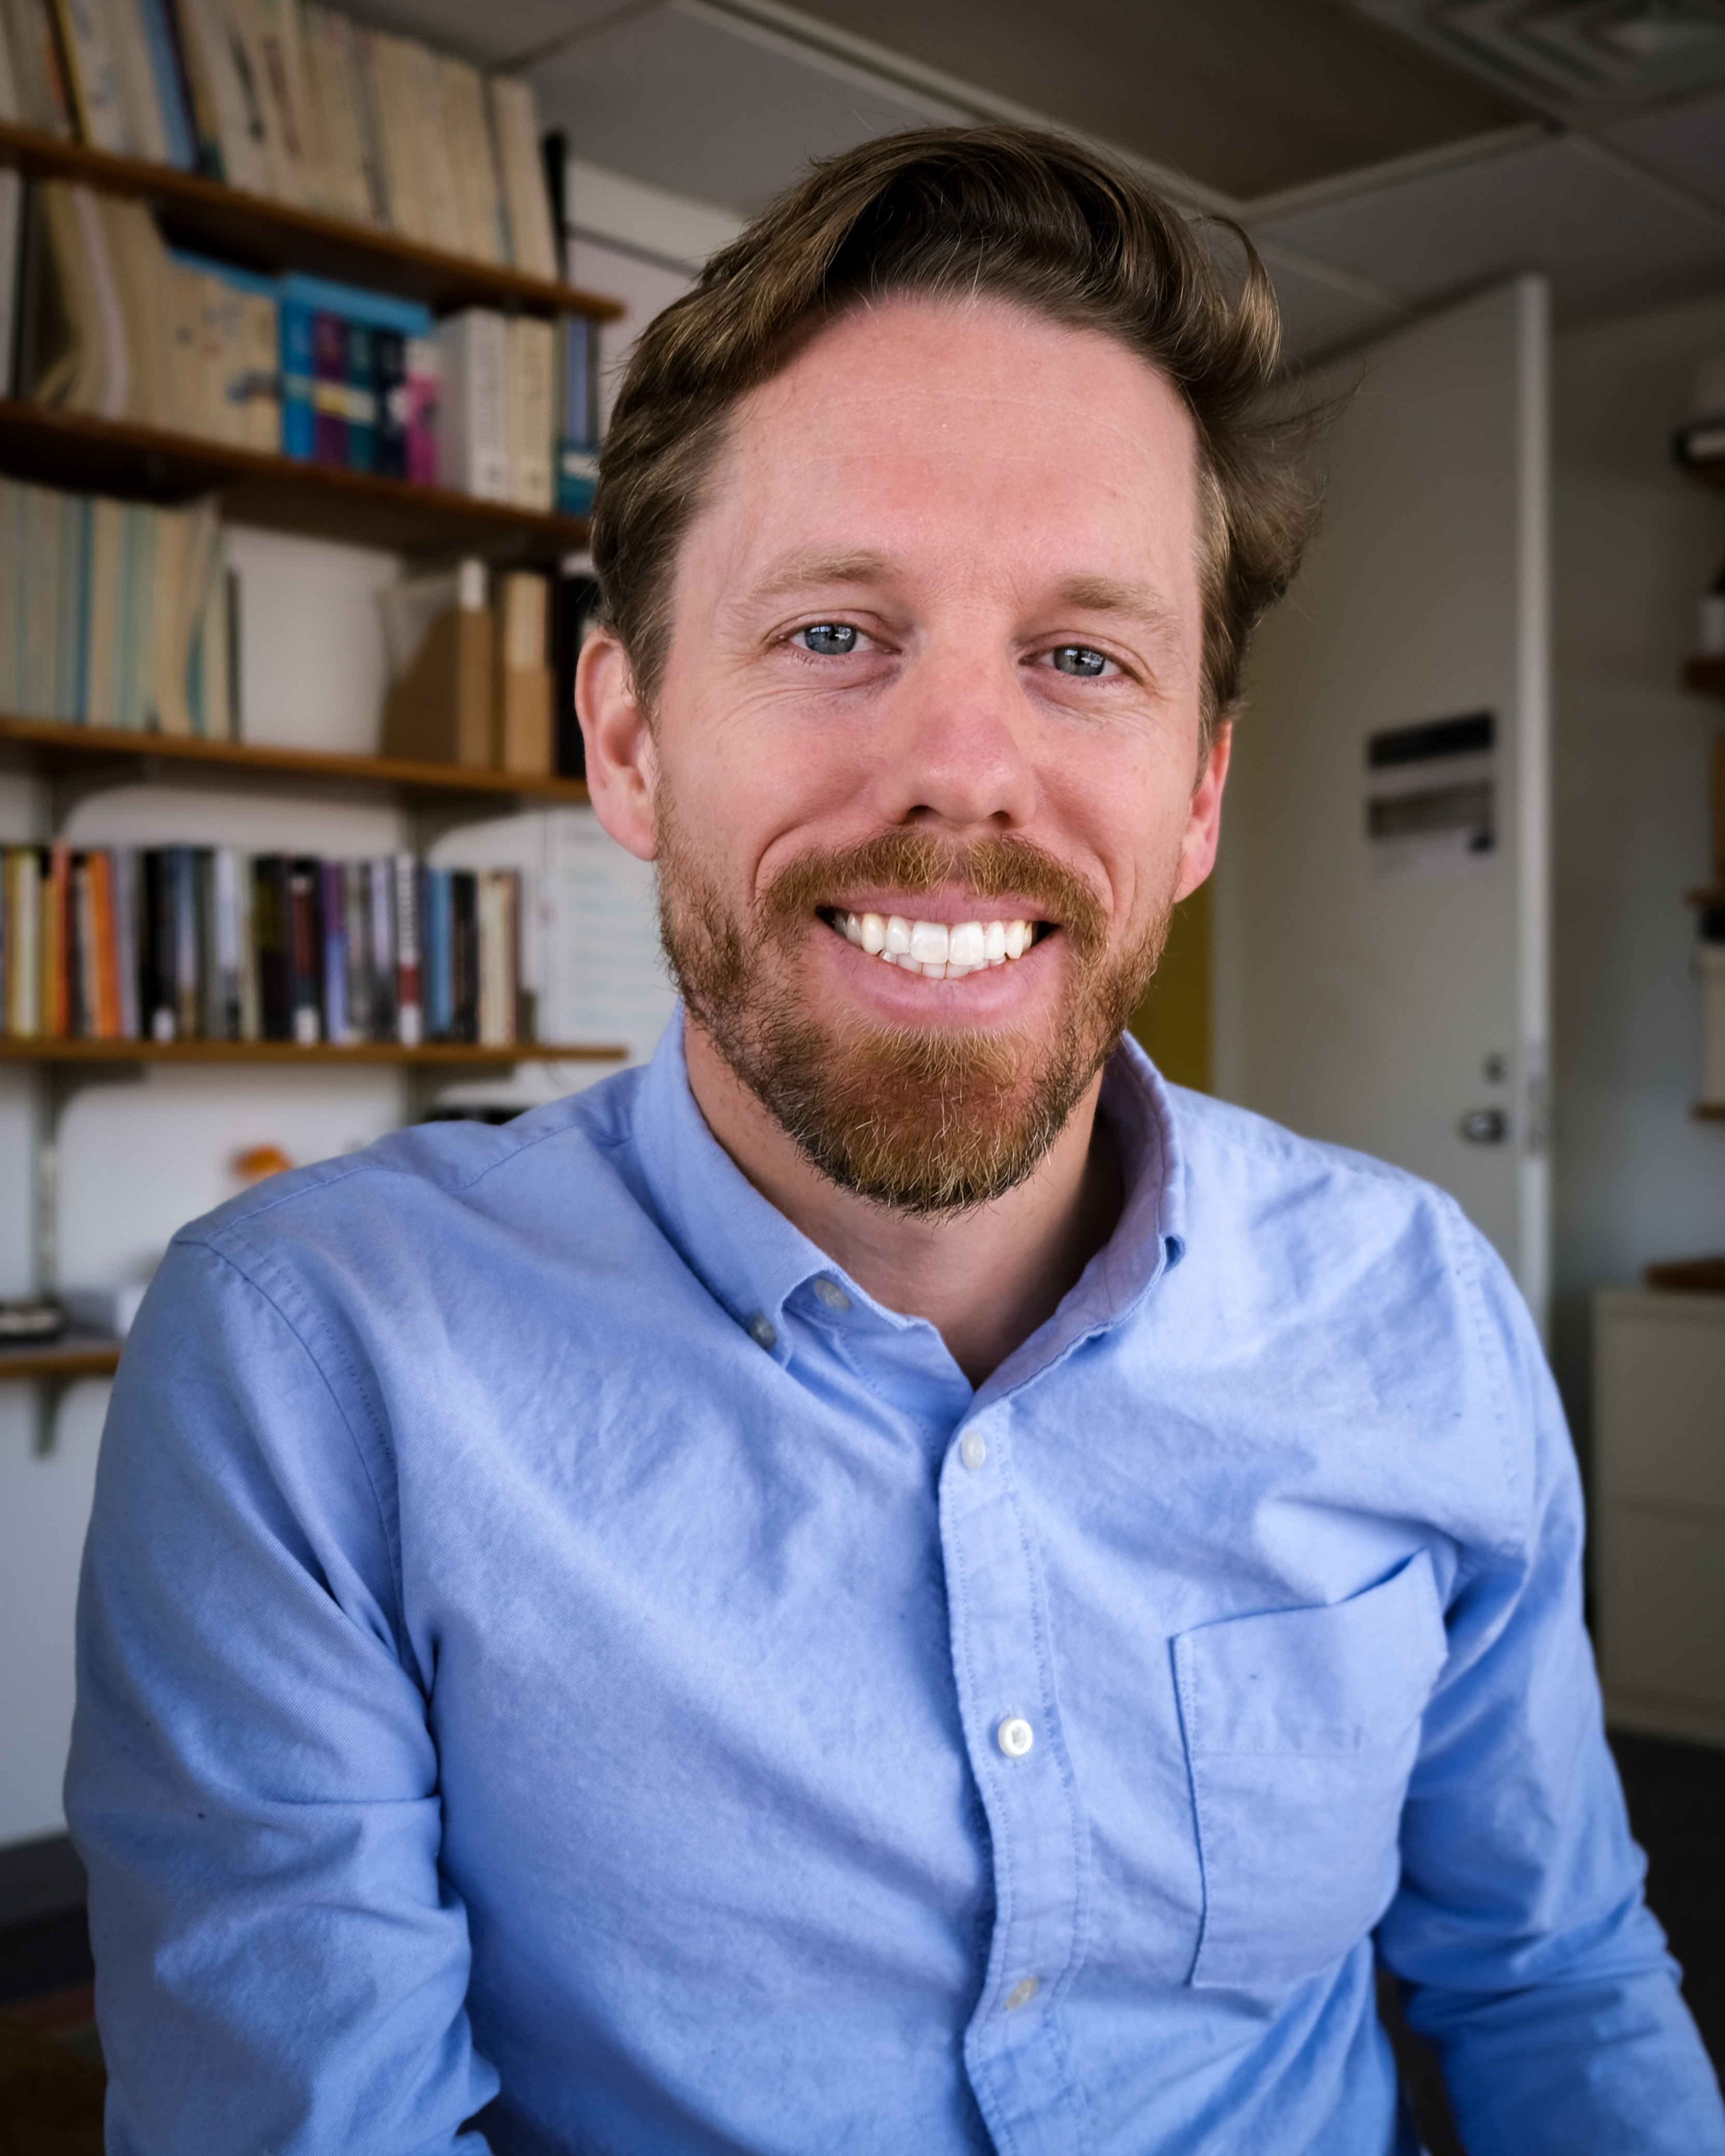 News from TRAC: Dr. Austin Kocher joins TRAC as New Faculty Fellow